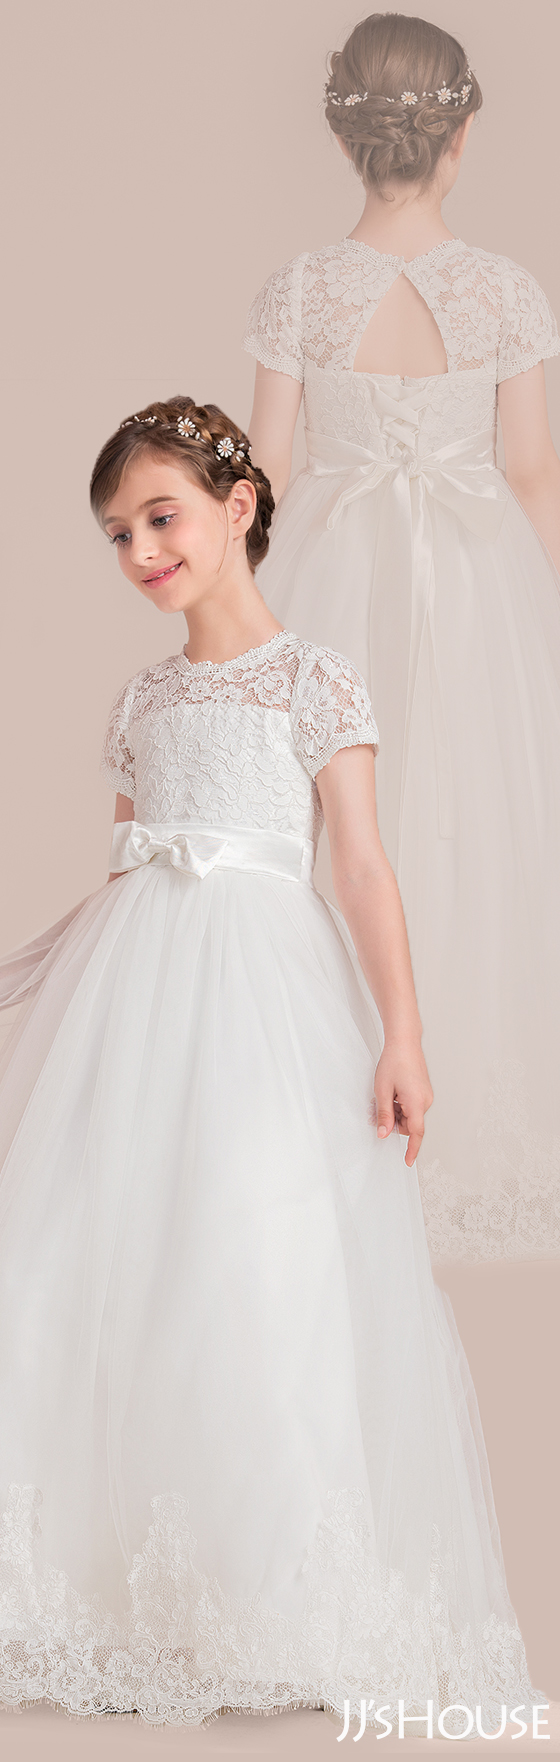 Scoop neck floorlength tulle junior bridesmaid dress with bows